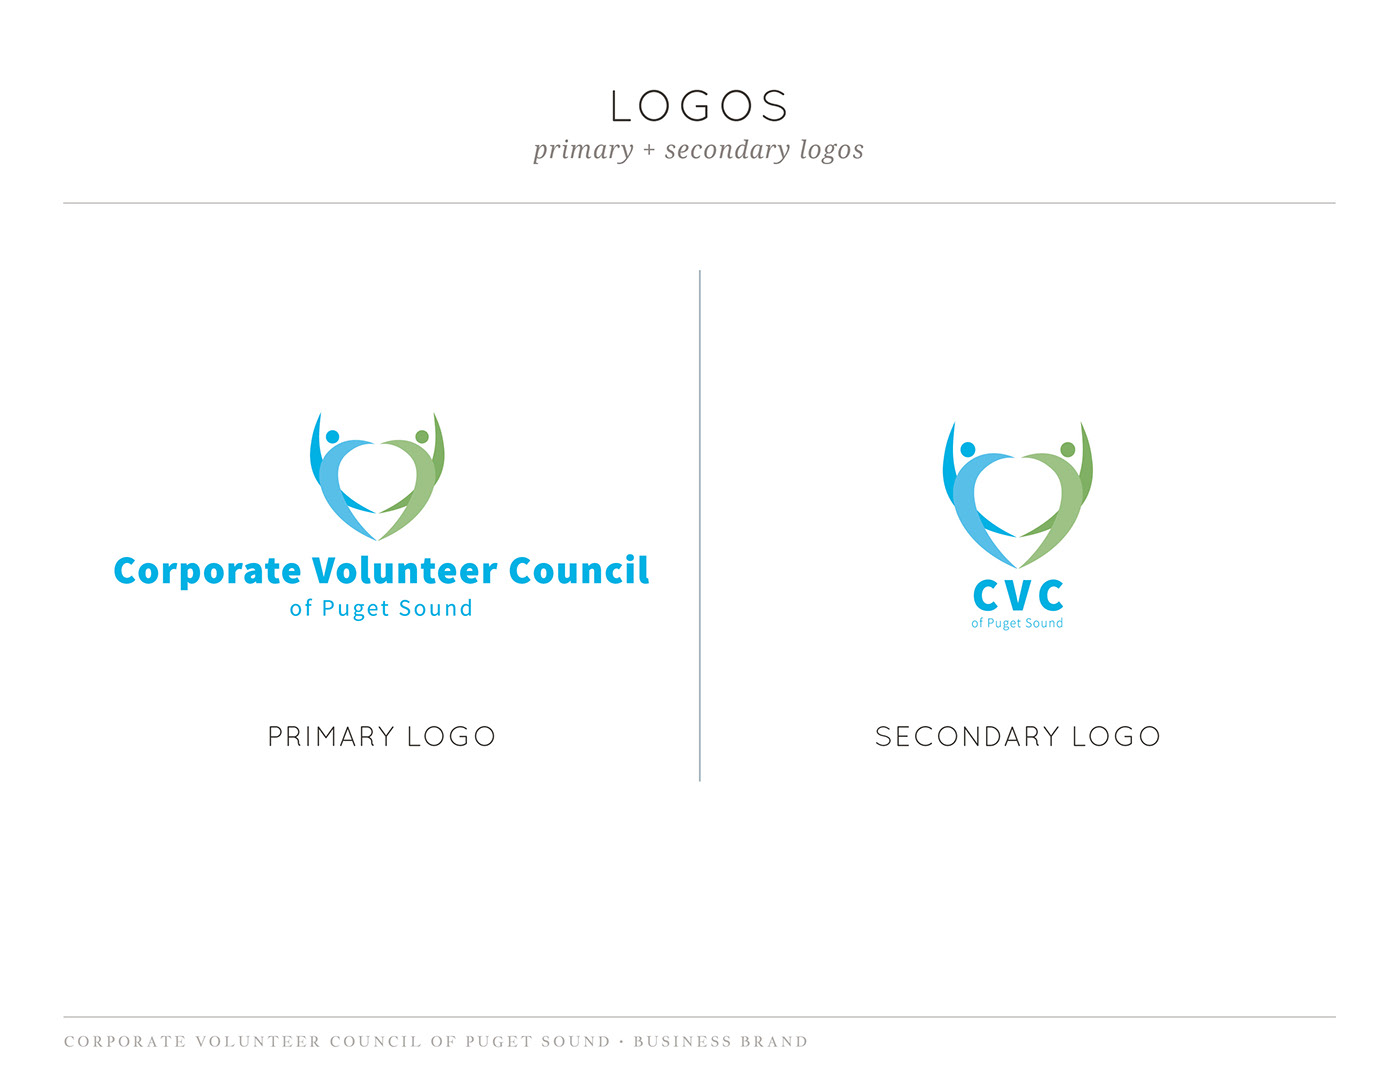 brand identity marketing one-sheet business card fundraising King County non-profit